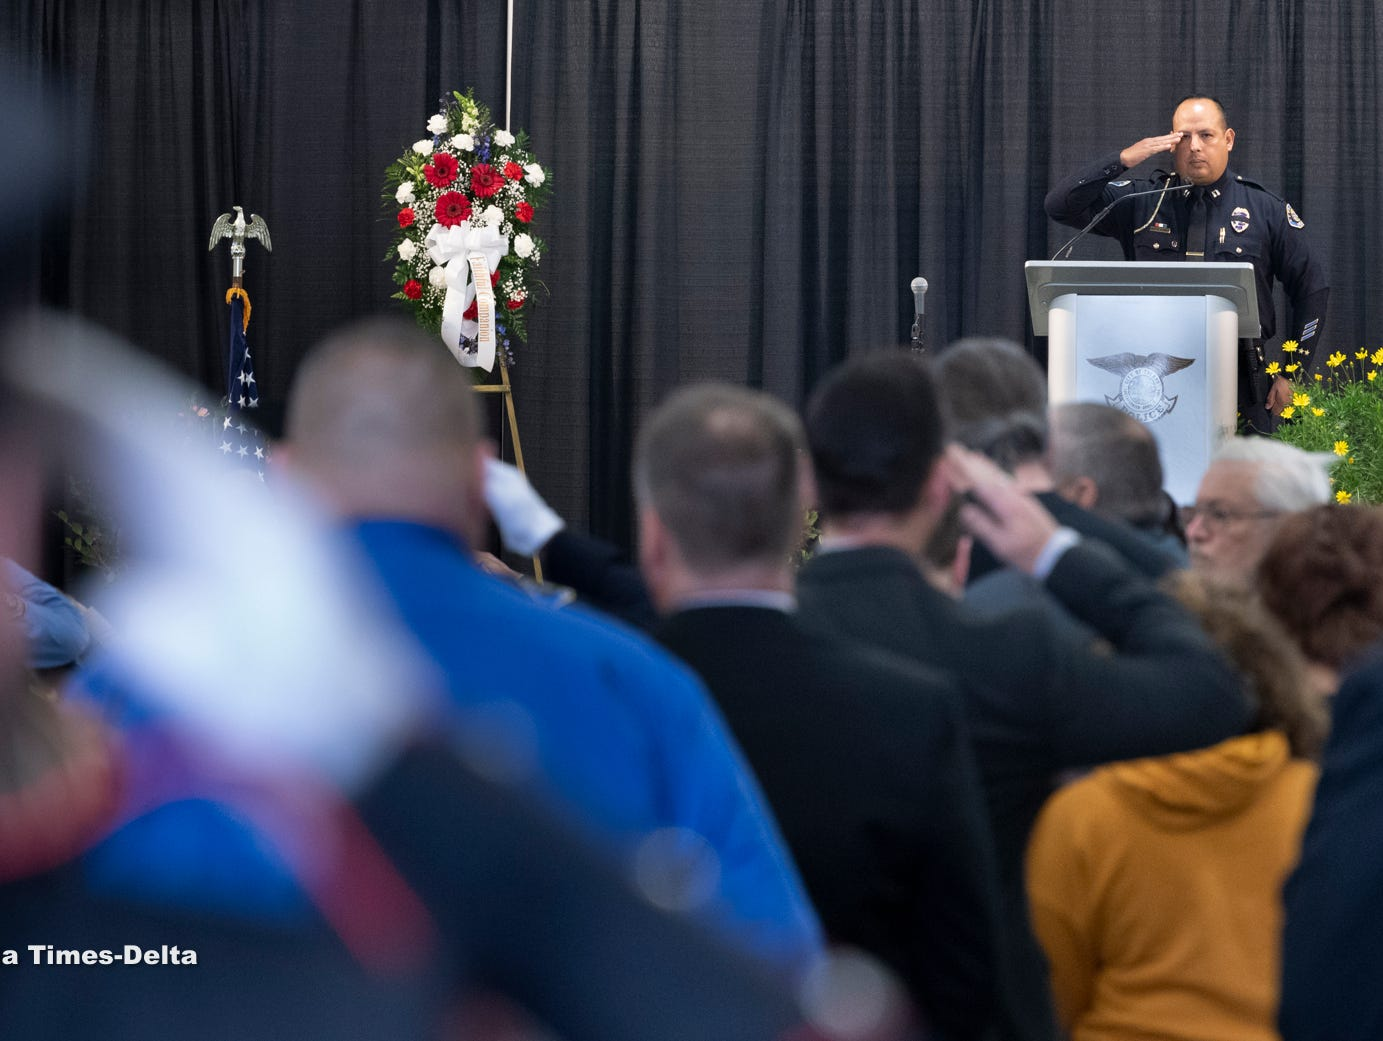 """Officers salute during as """"End of Watch"""" is announced for Tulare Police K-9  officer Bane during a memorial for the dog on Wednesday, January 9, 2019. Bane was killed during an officer-involved shooting on December 9 of last year."""